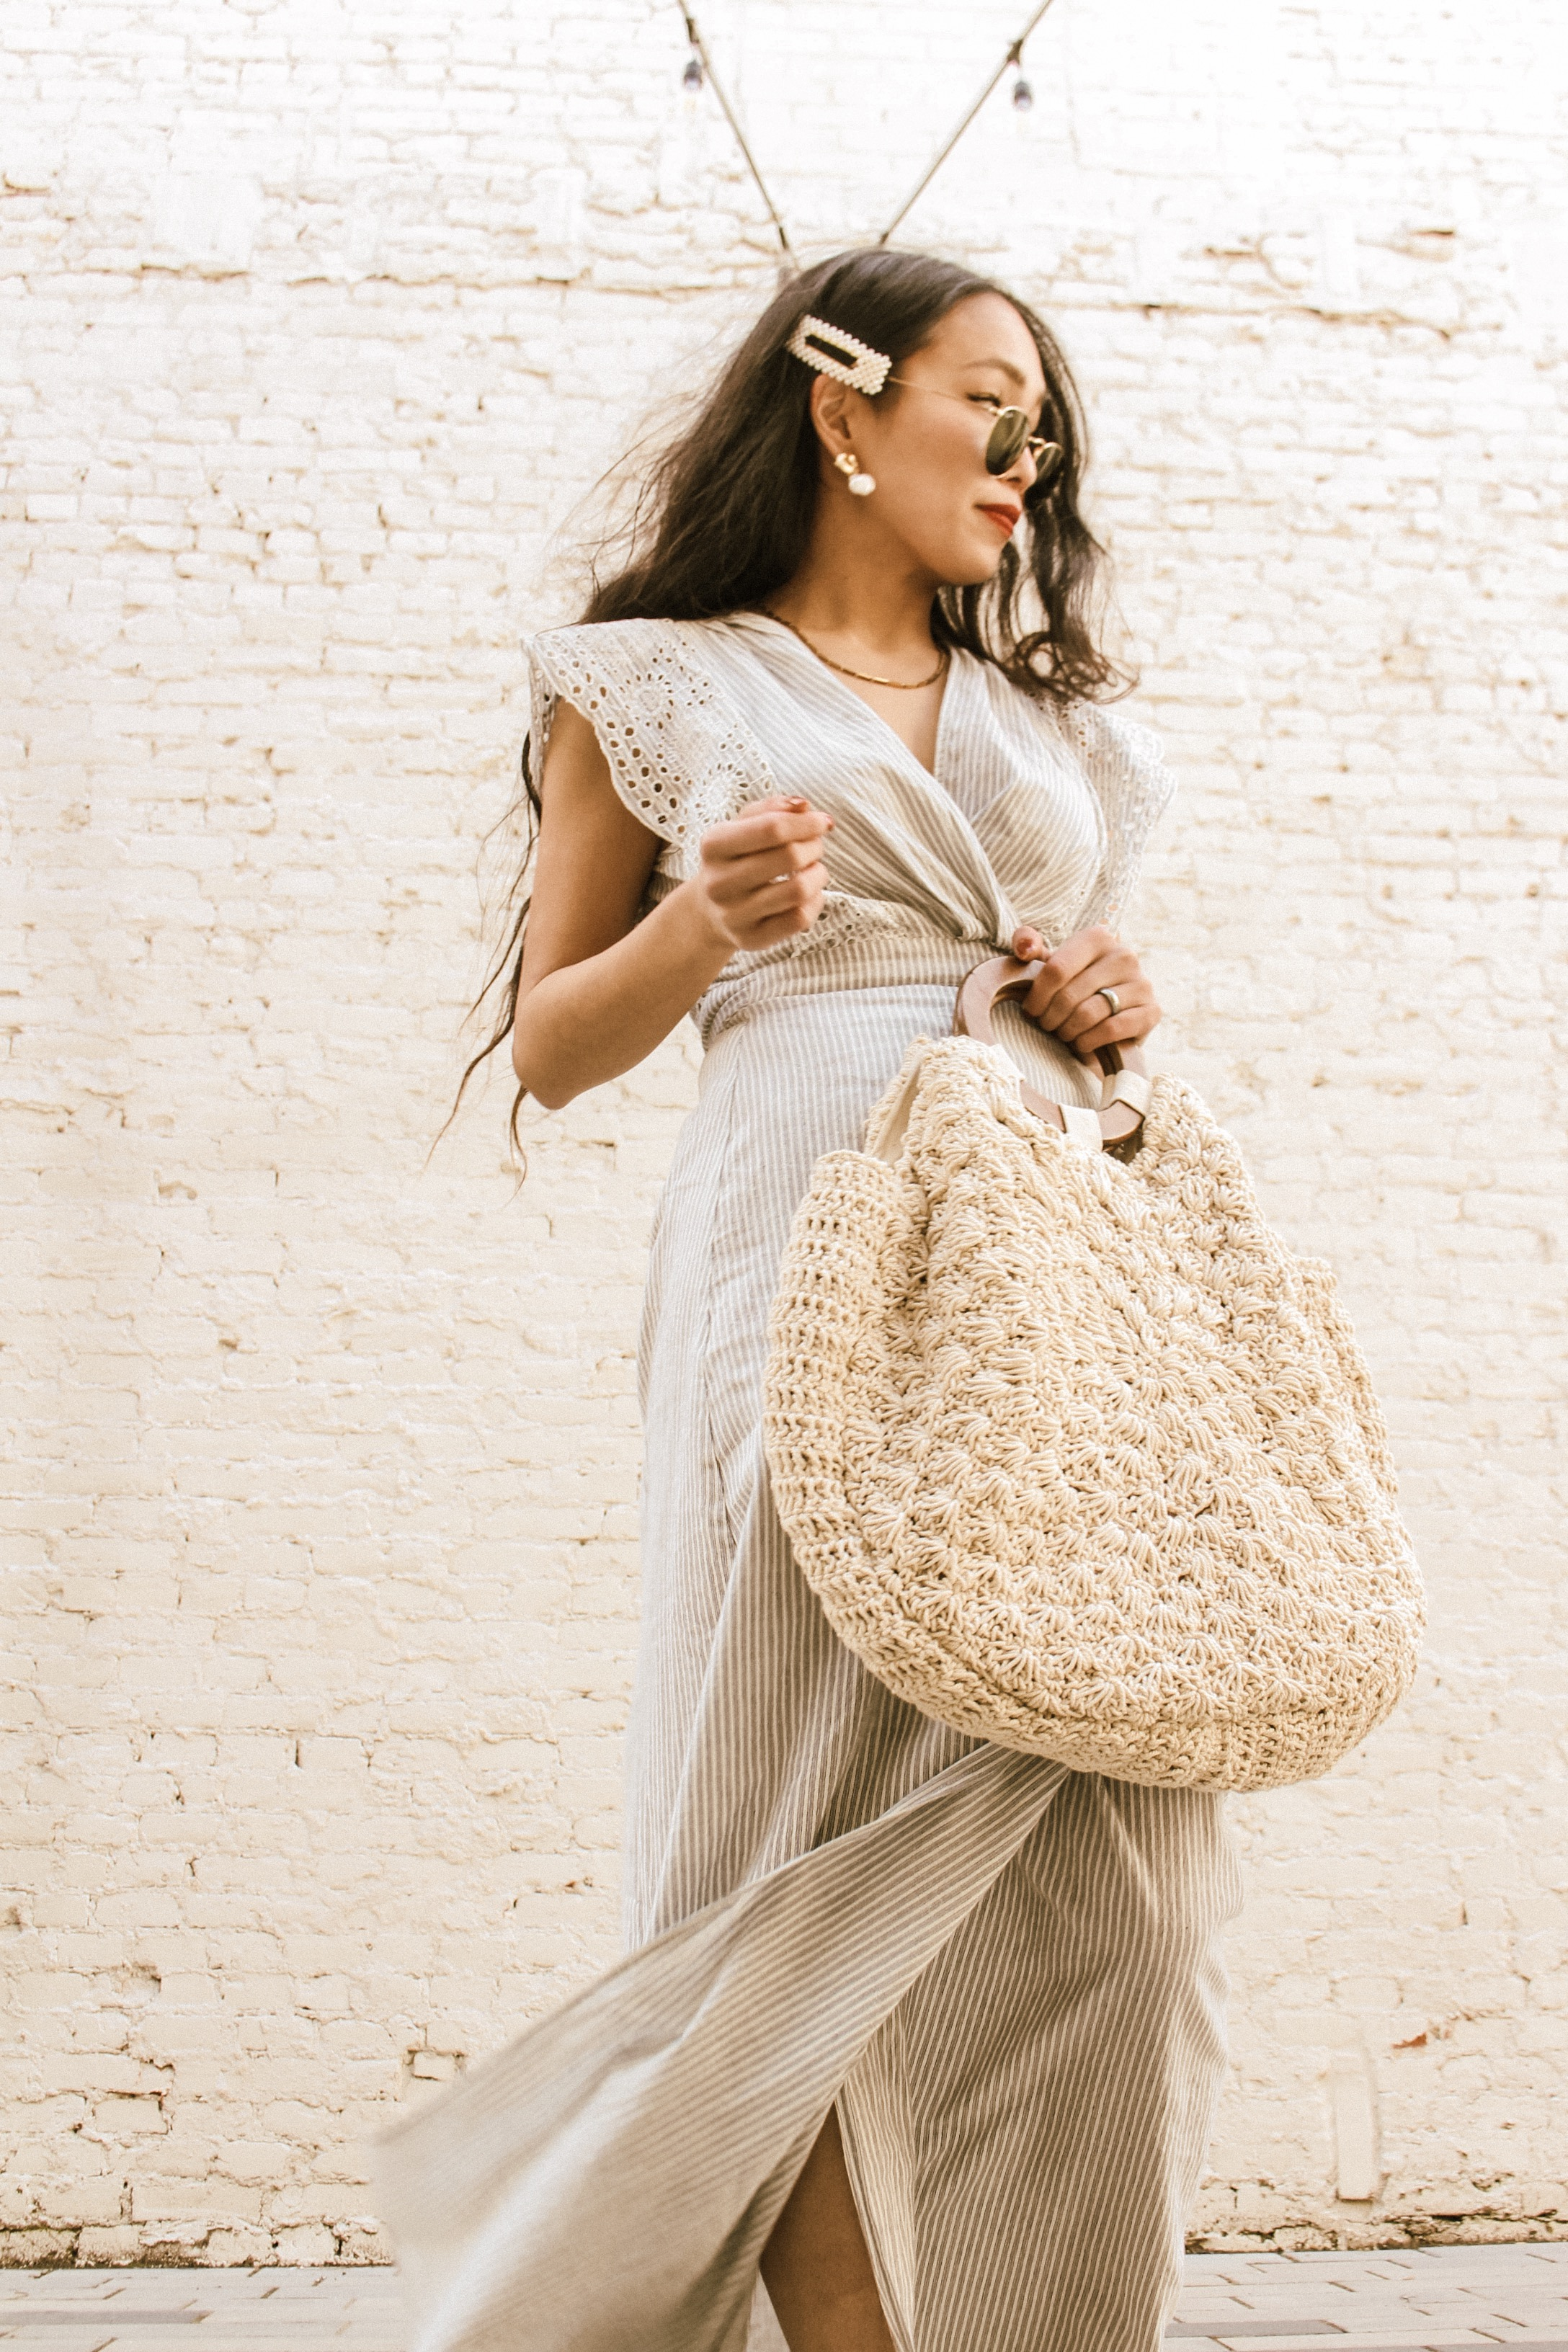 2: MACRAME/WOVEN BAG - Oh. My. God. These bags are literally my wardrobe game changers. I got my first one last spring, and I can't even count how many outfits I've styled with it. And then I added a new one this spring so I will be using these bags like I'm addicted. (I am though…) They are soft - almost like cotton totes! There are so many of these bags out there, but I personally LOVE the bigger ones because 1) You can carry SO MUCH which is perfect for people like me who carries a lot of things, 2) But you won't look like a bag lady, you would still look SO cute!